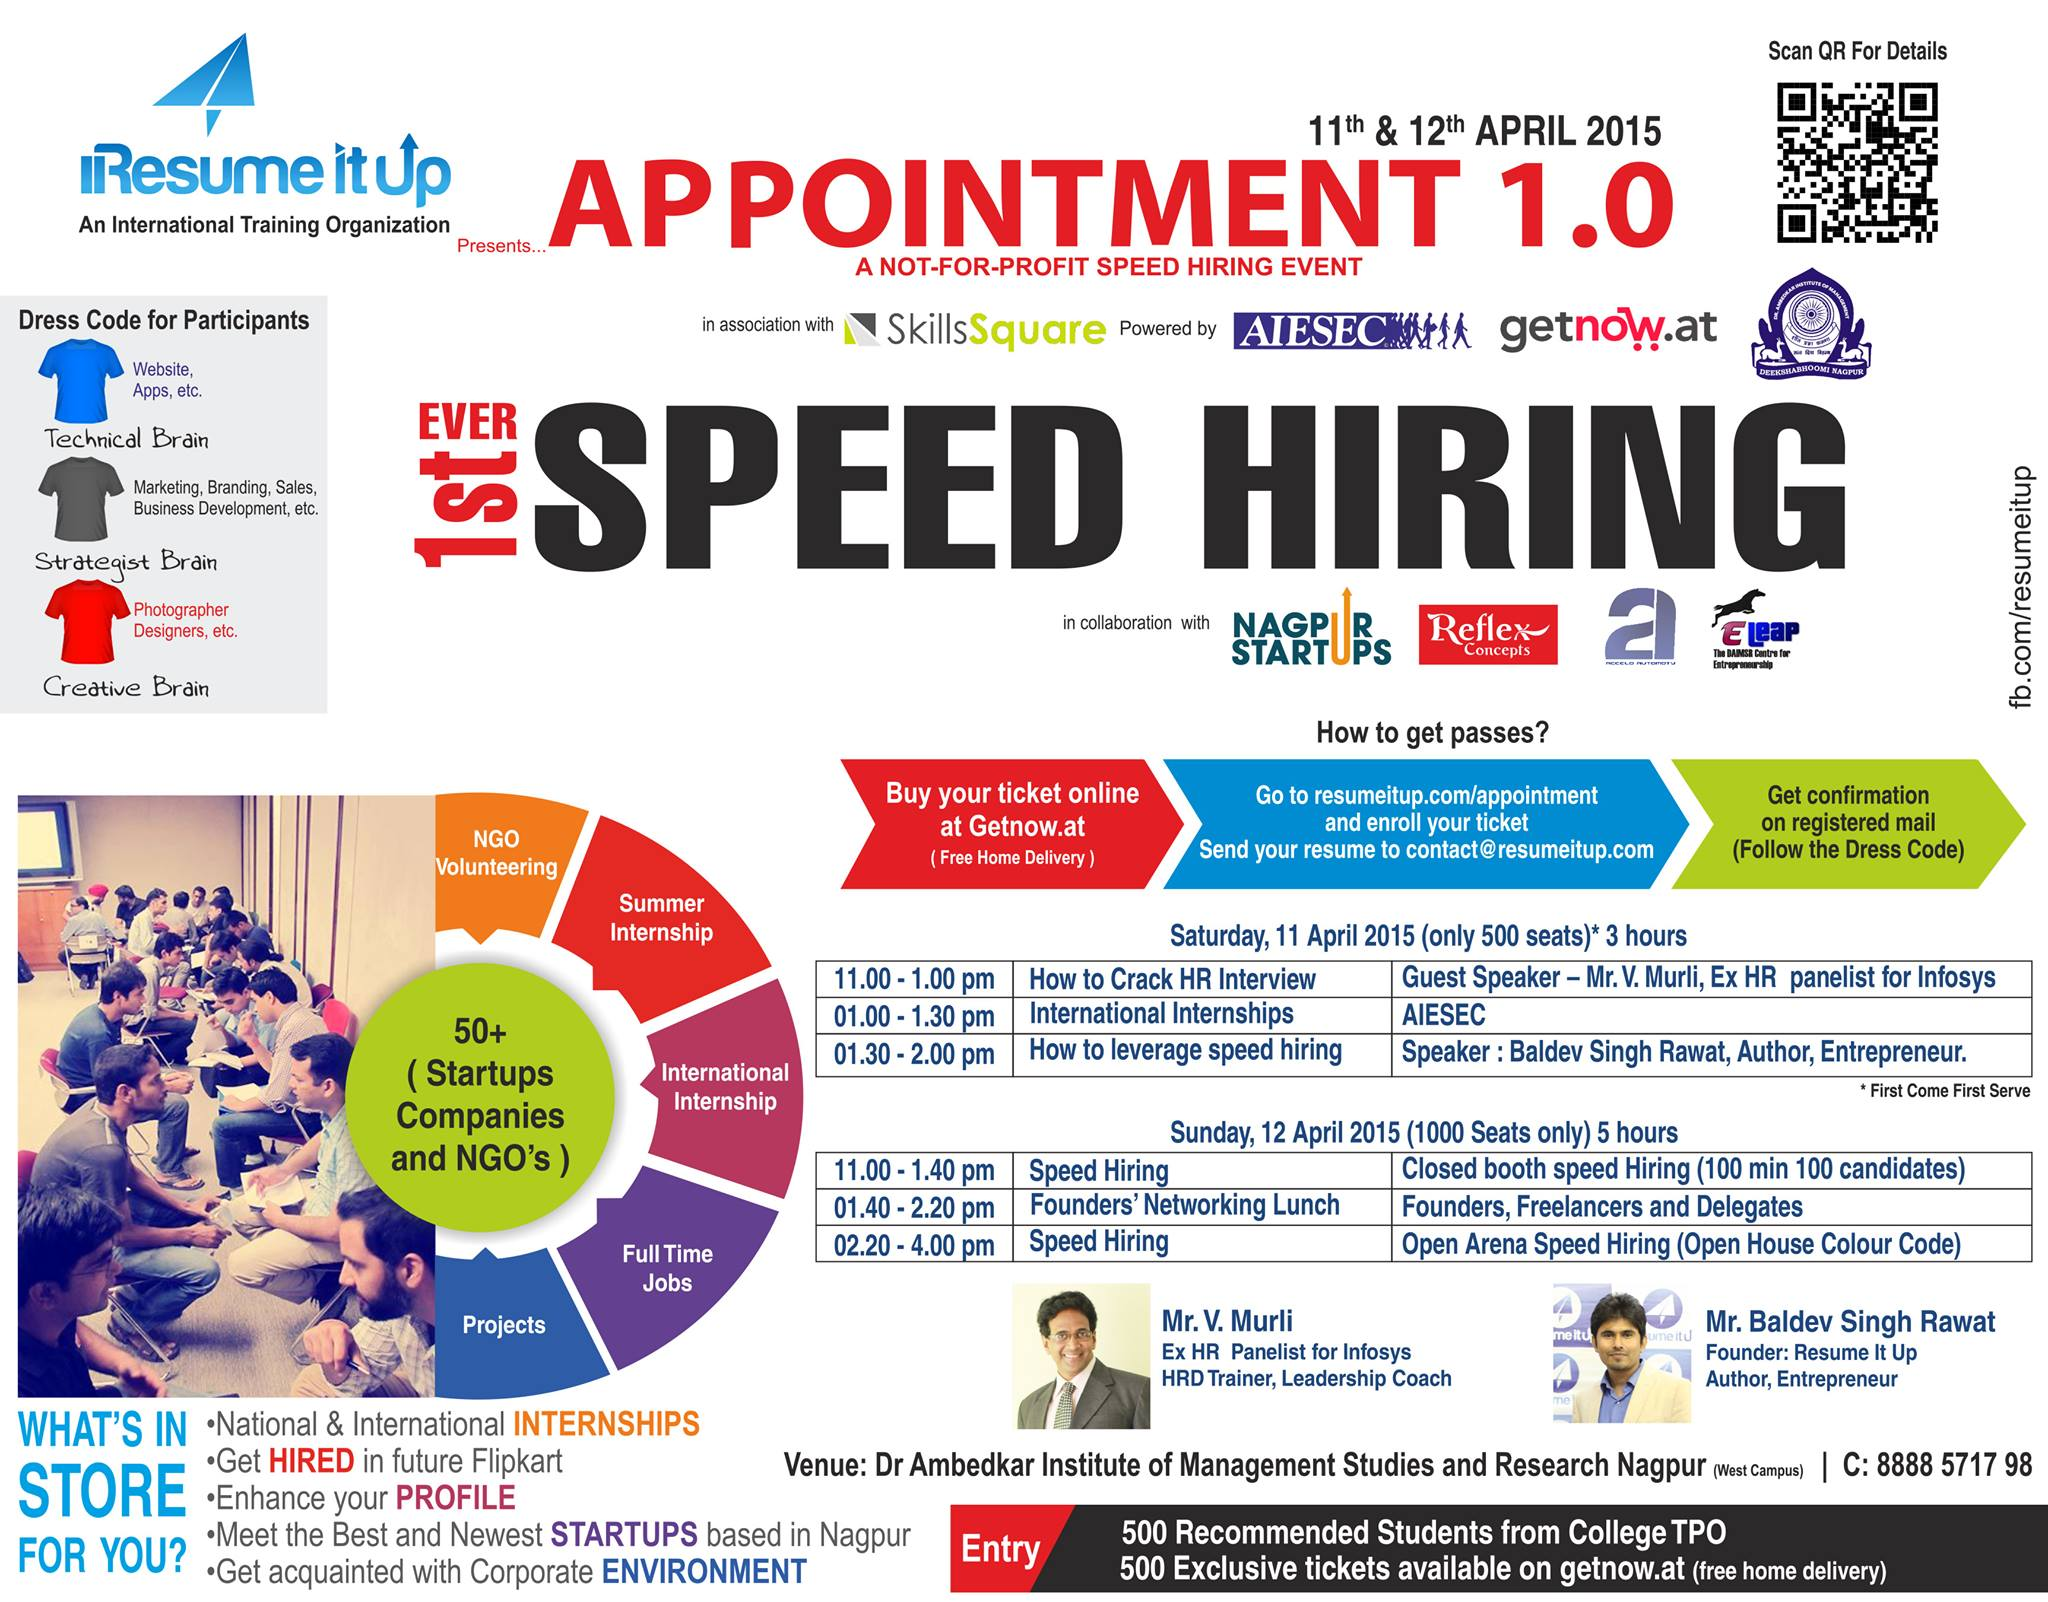 APPOINTMENT 1.0